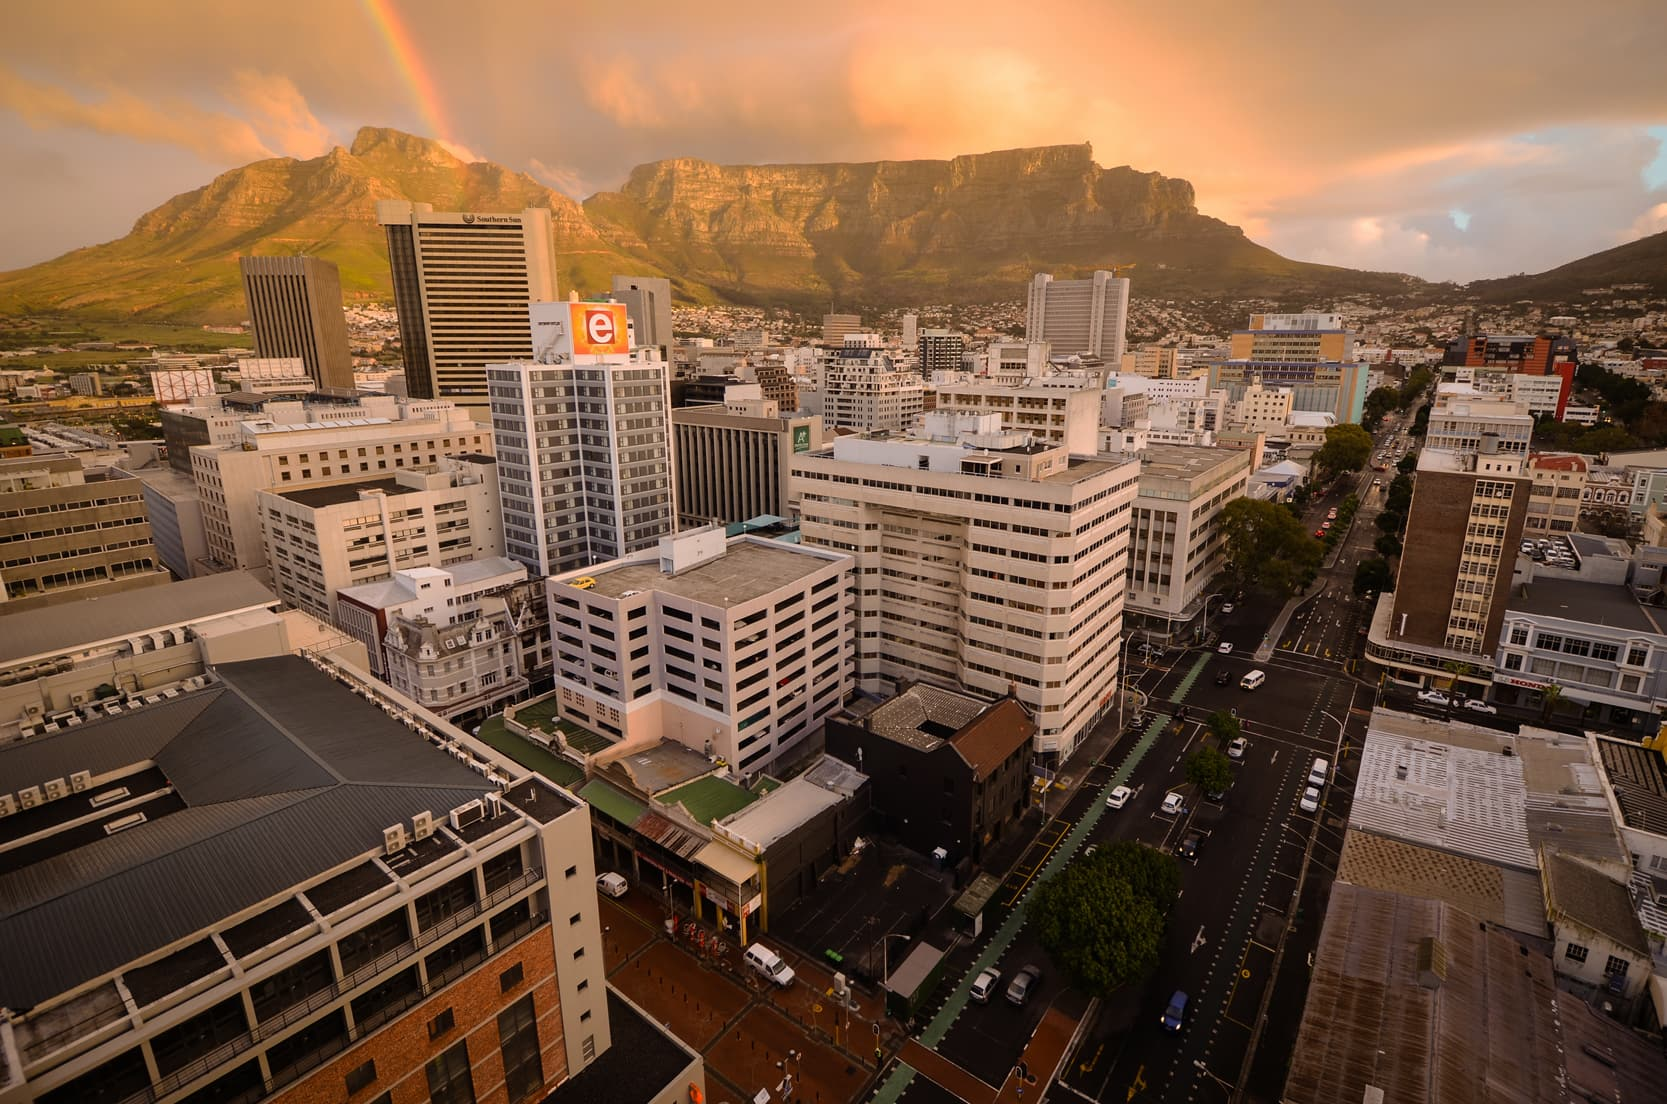 The best time of year to visit Cape Town